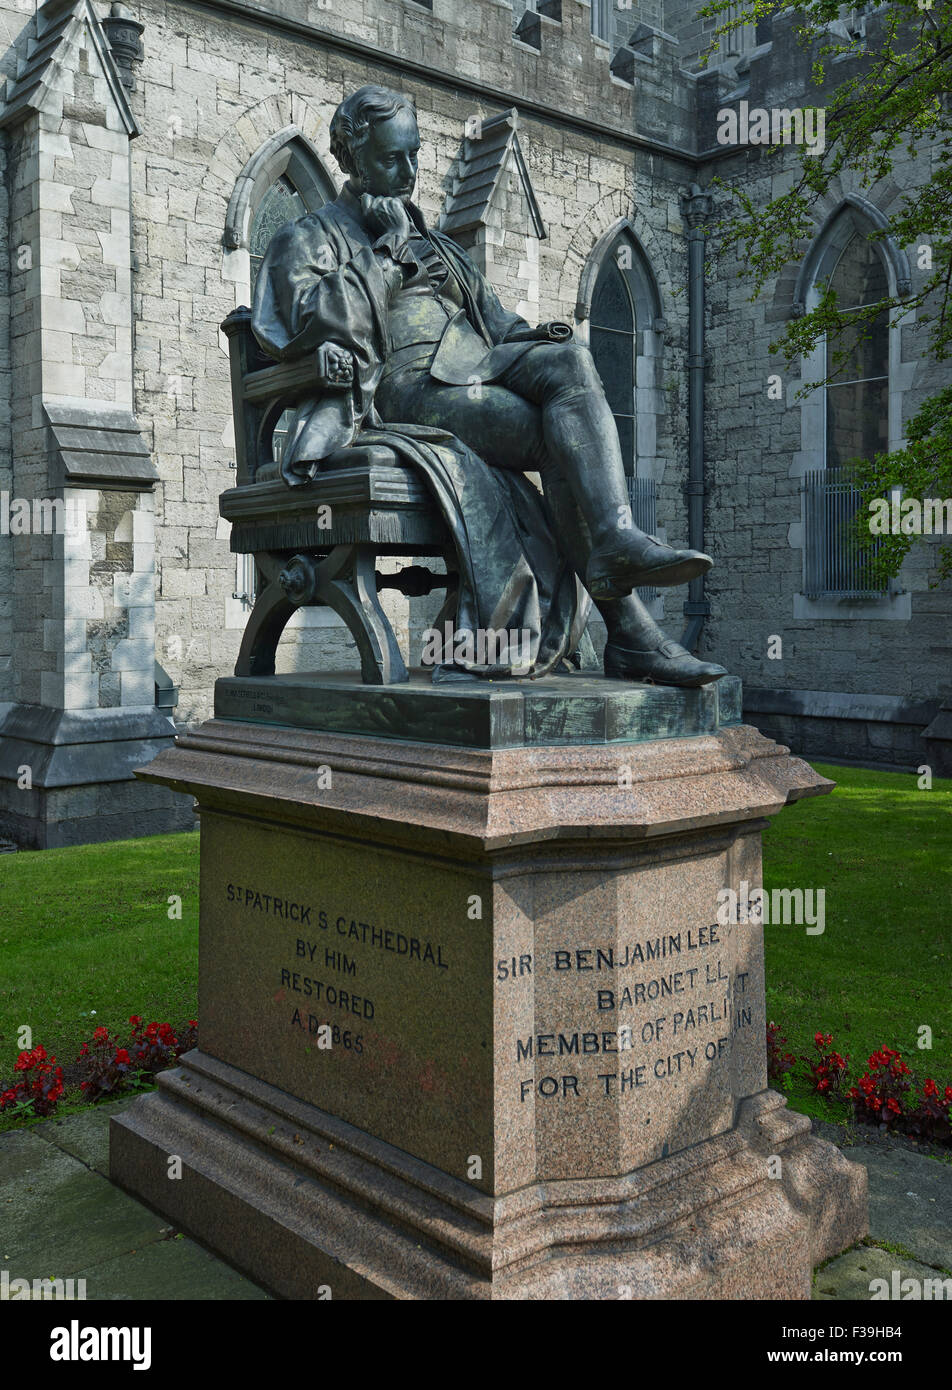 St Patrick's Cathedral Dublin Guinness - Stock Image